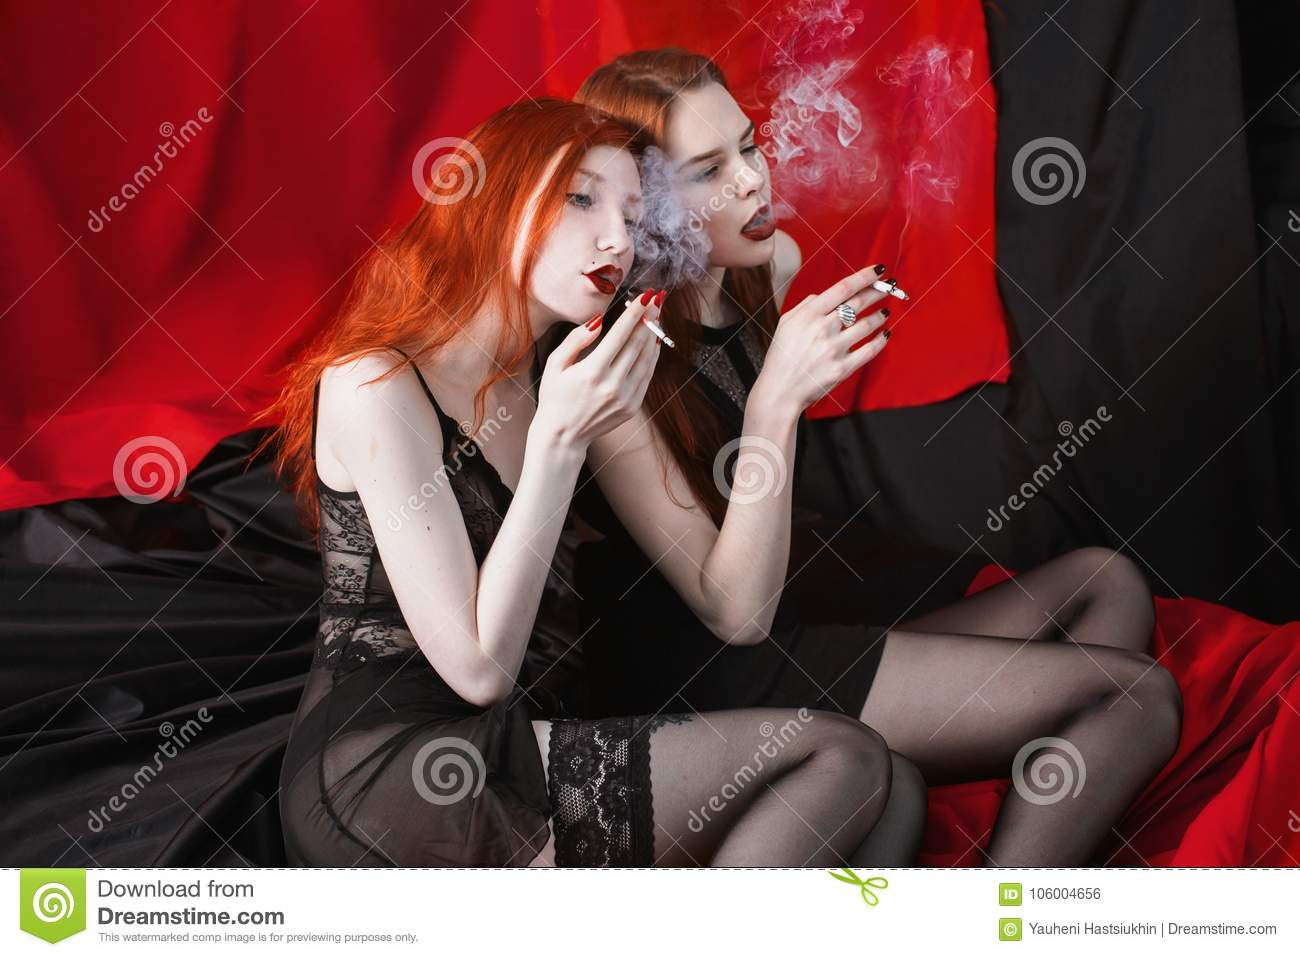 Was specially hot red head lesbian